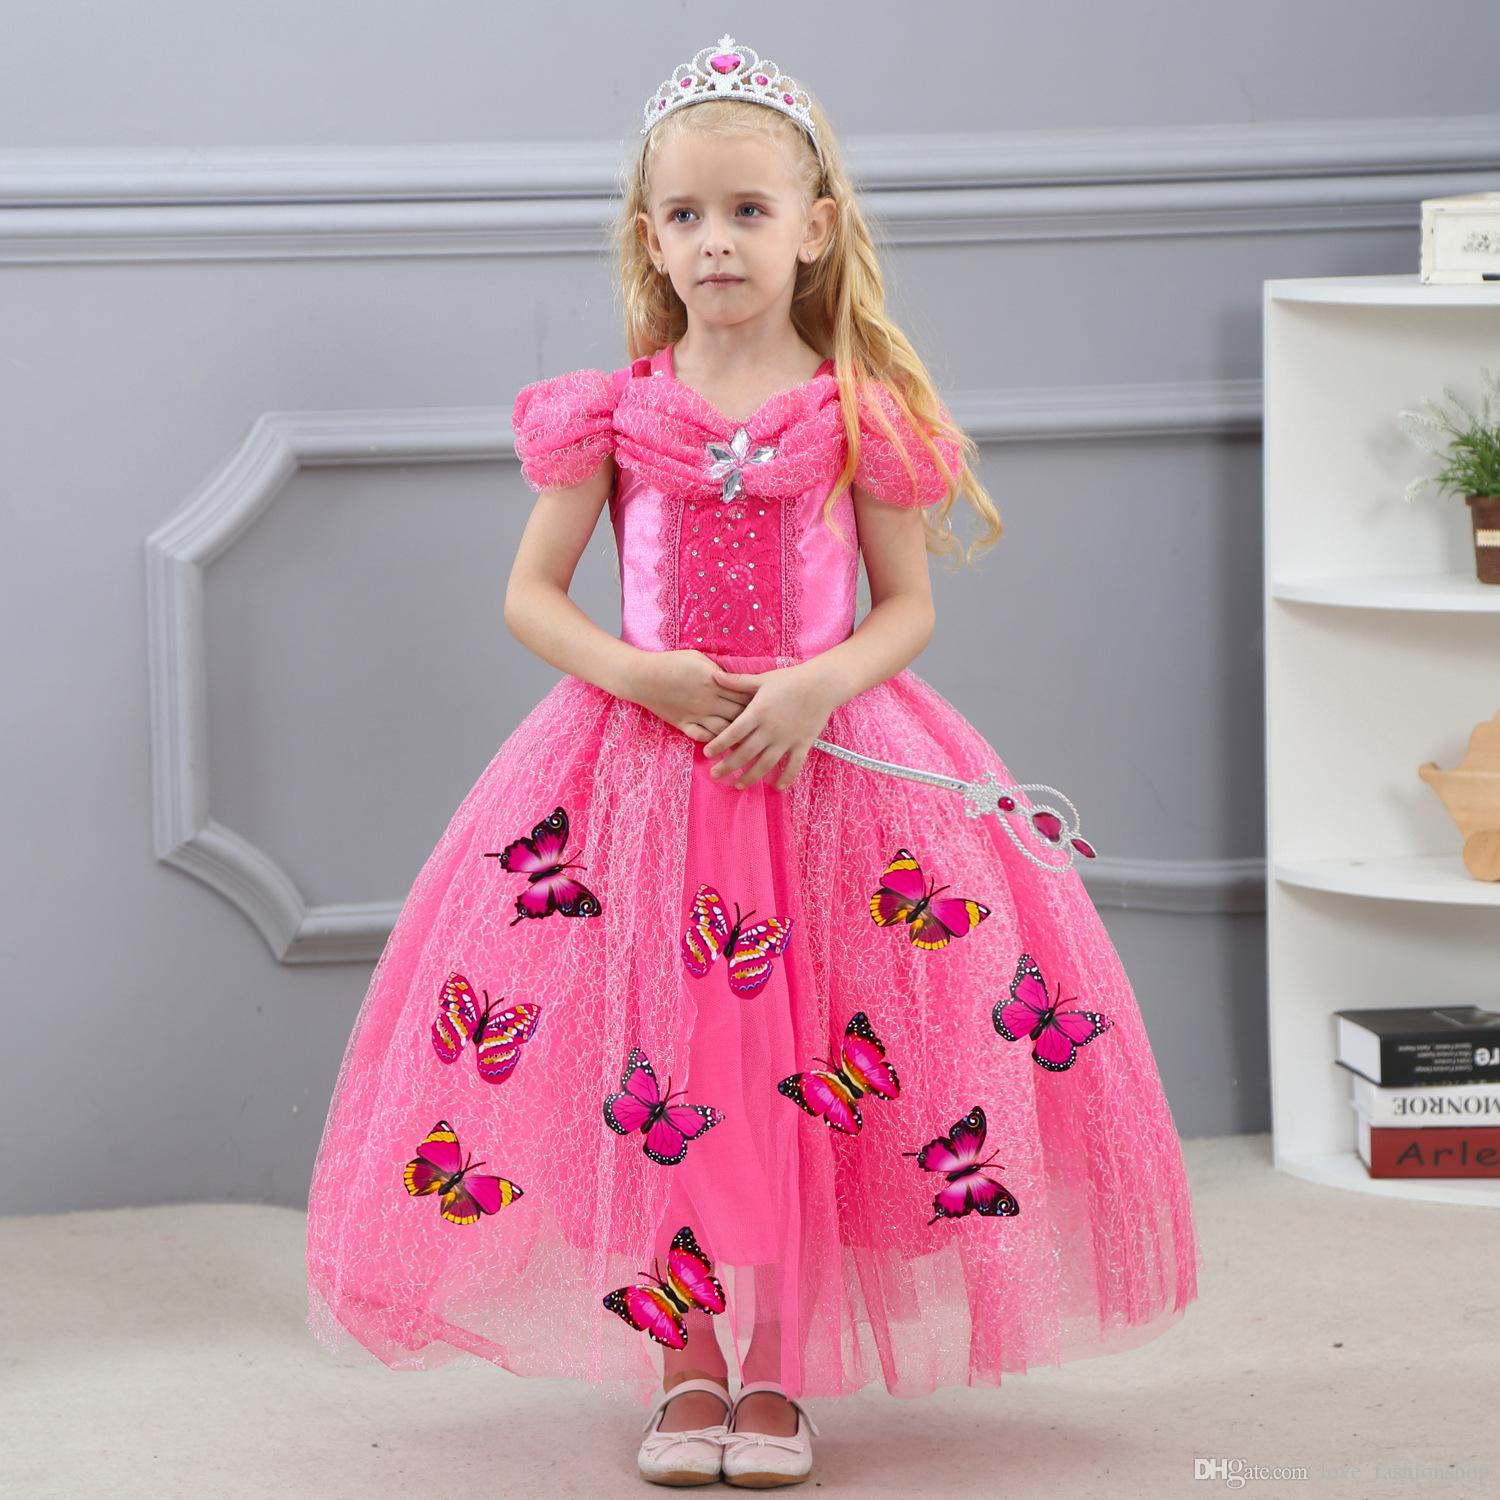 66ddd69ebba18 1pcs 4 Colors 2019 Girls cinderella gowns Dress blue butterflies Kids  Easter Halloween Diamond Cosplay costumes Clothing Party Formal Dress